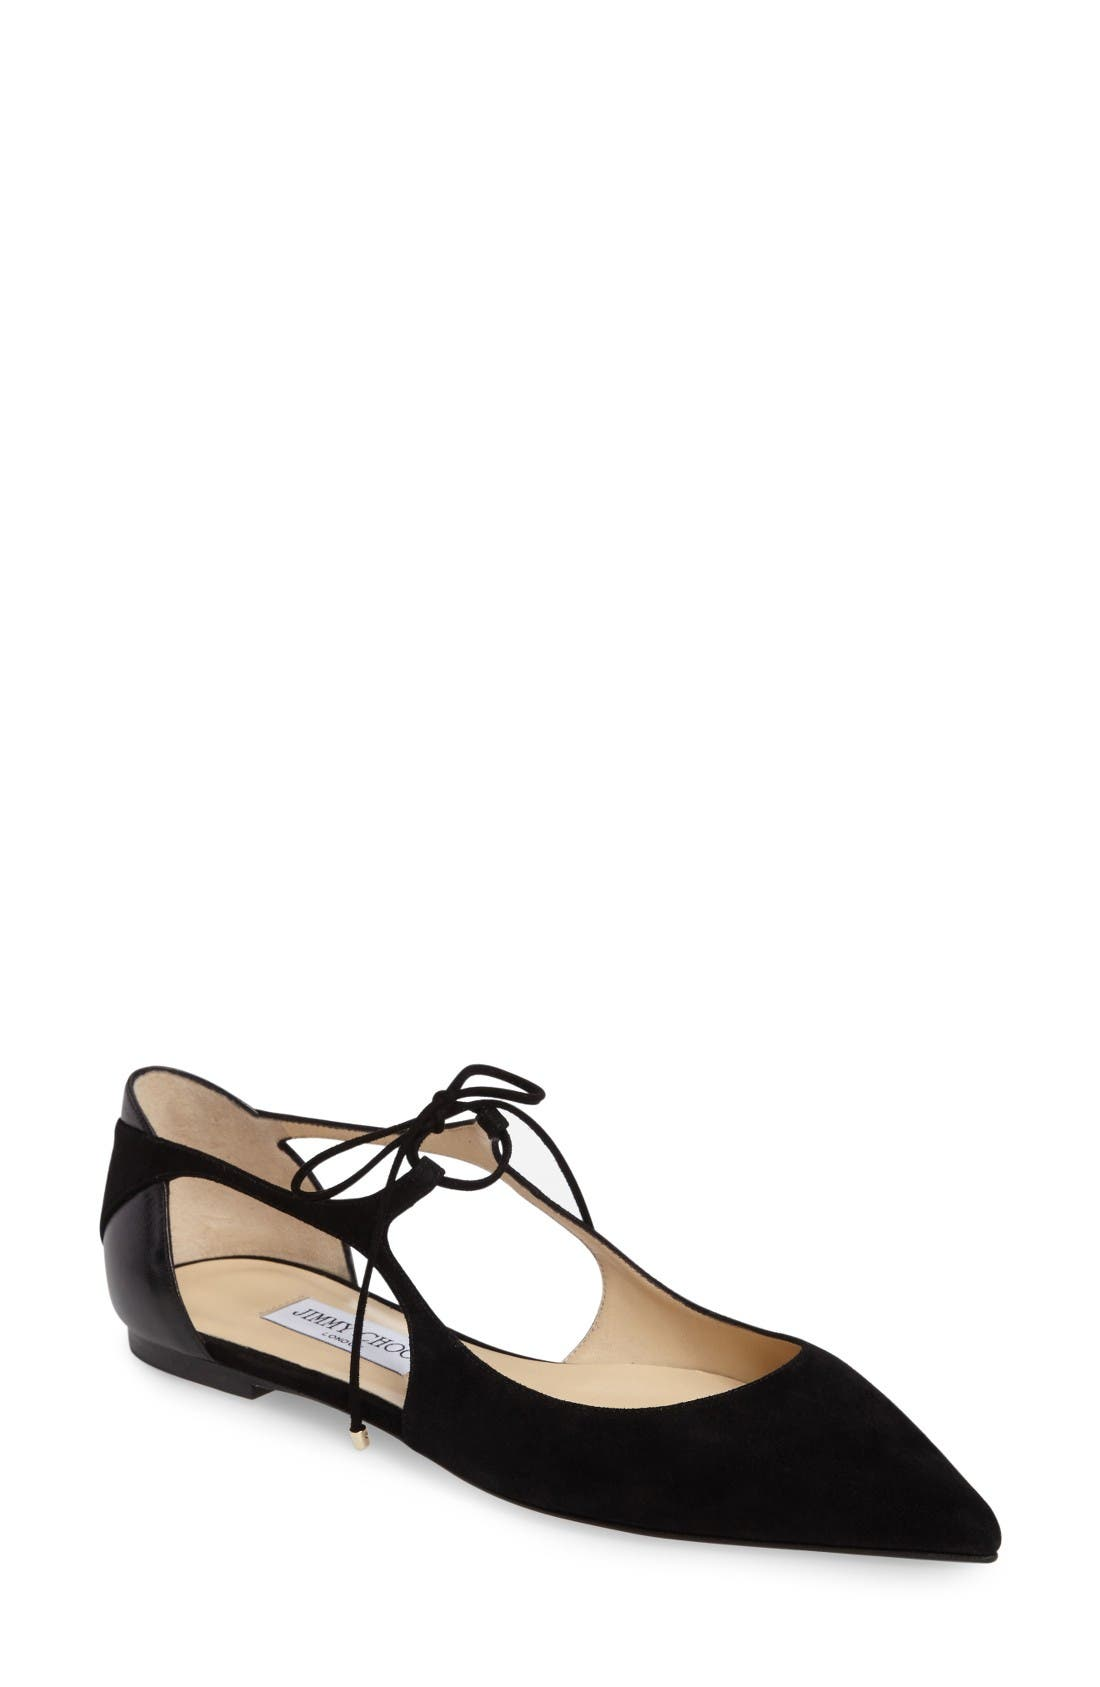 Main Image - Jimmy Choo Vanessa Lace-Up Flat (Women)